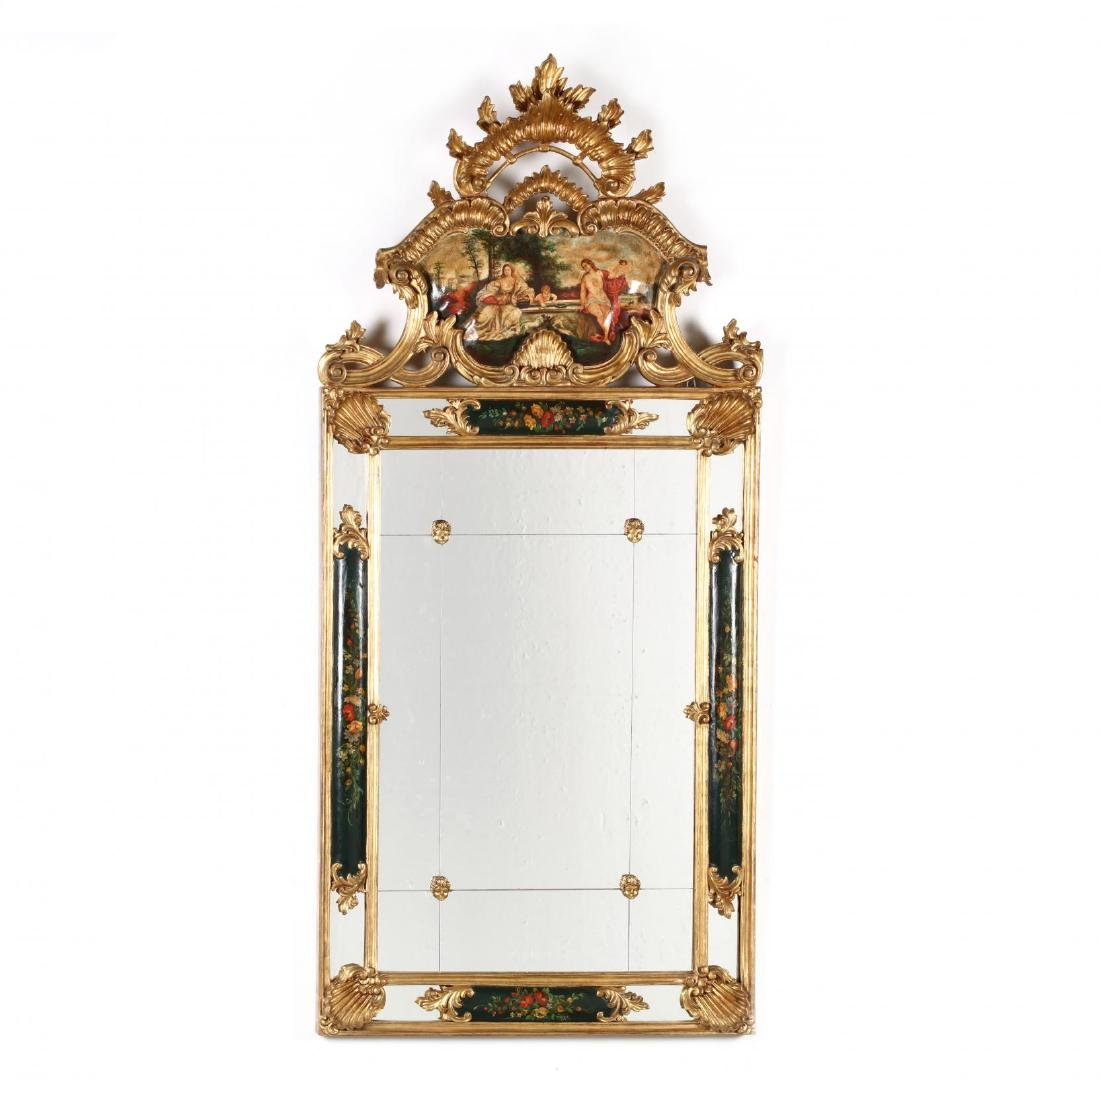 A Designer Baroque Style Scenic Painted Mirror